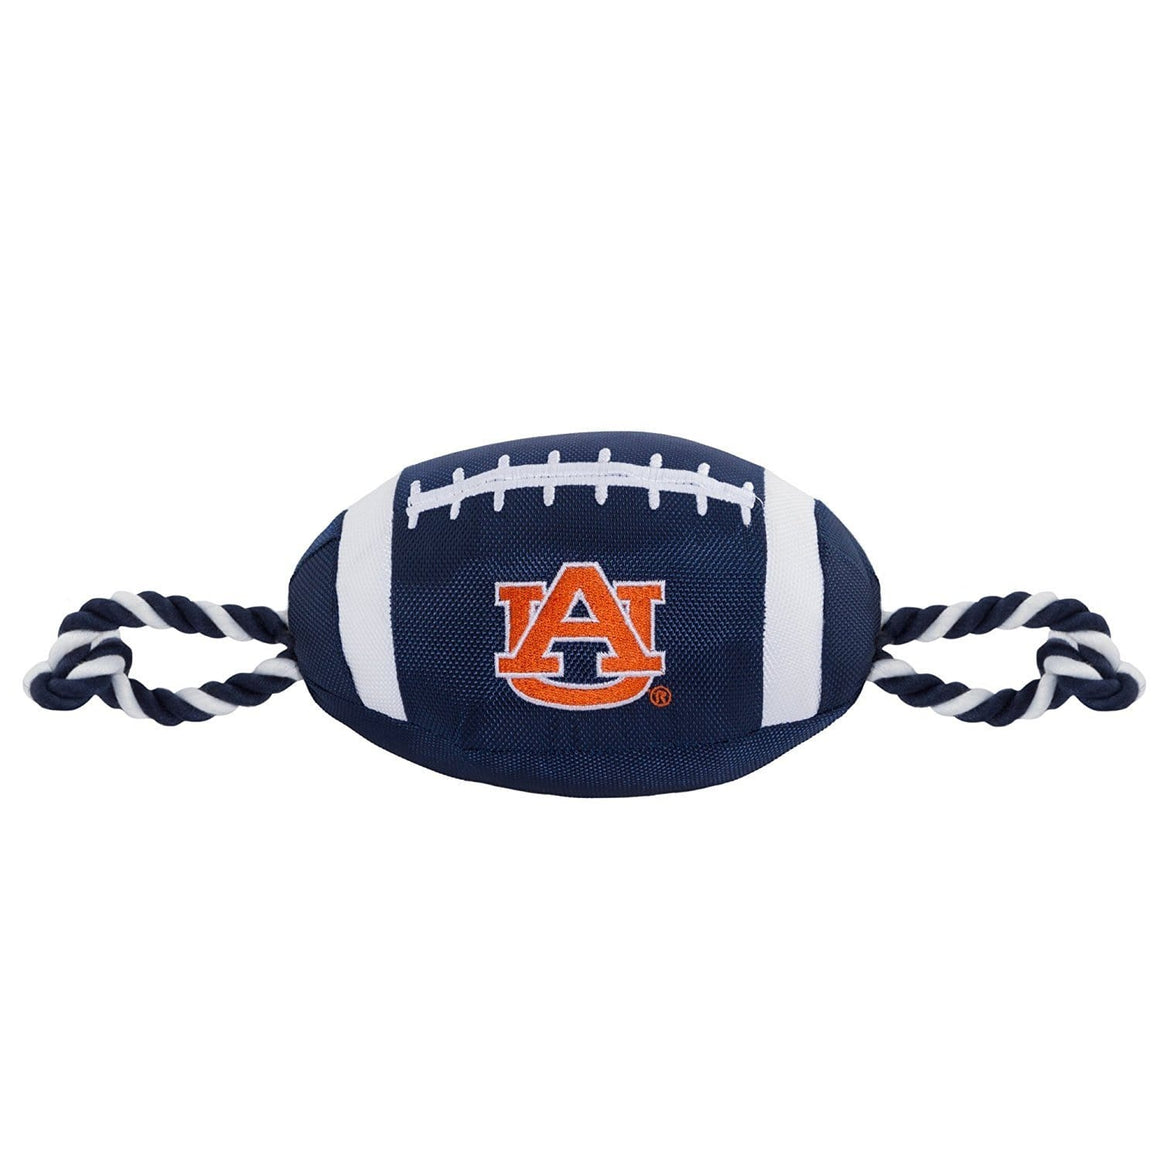 Pets First Dog-products NCAA Auburn Tigers Pet Nylon Football